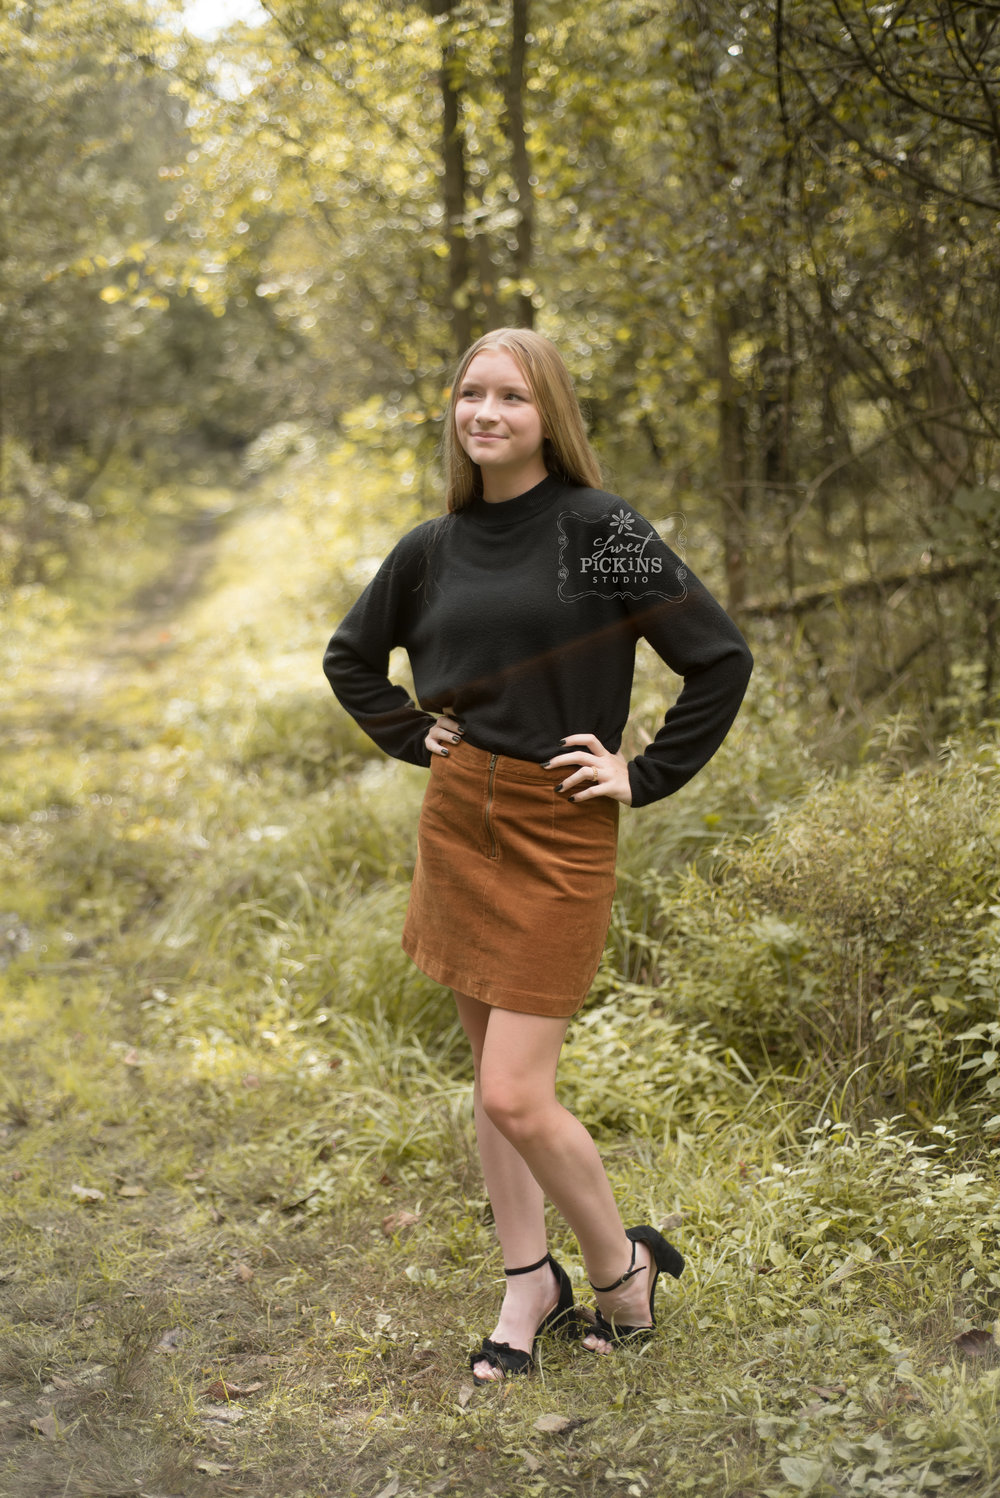 Fall Teen Model Photography Session with Sweet Pickins Studio | Peru, Indiana